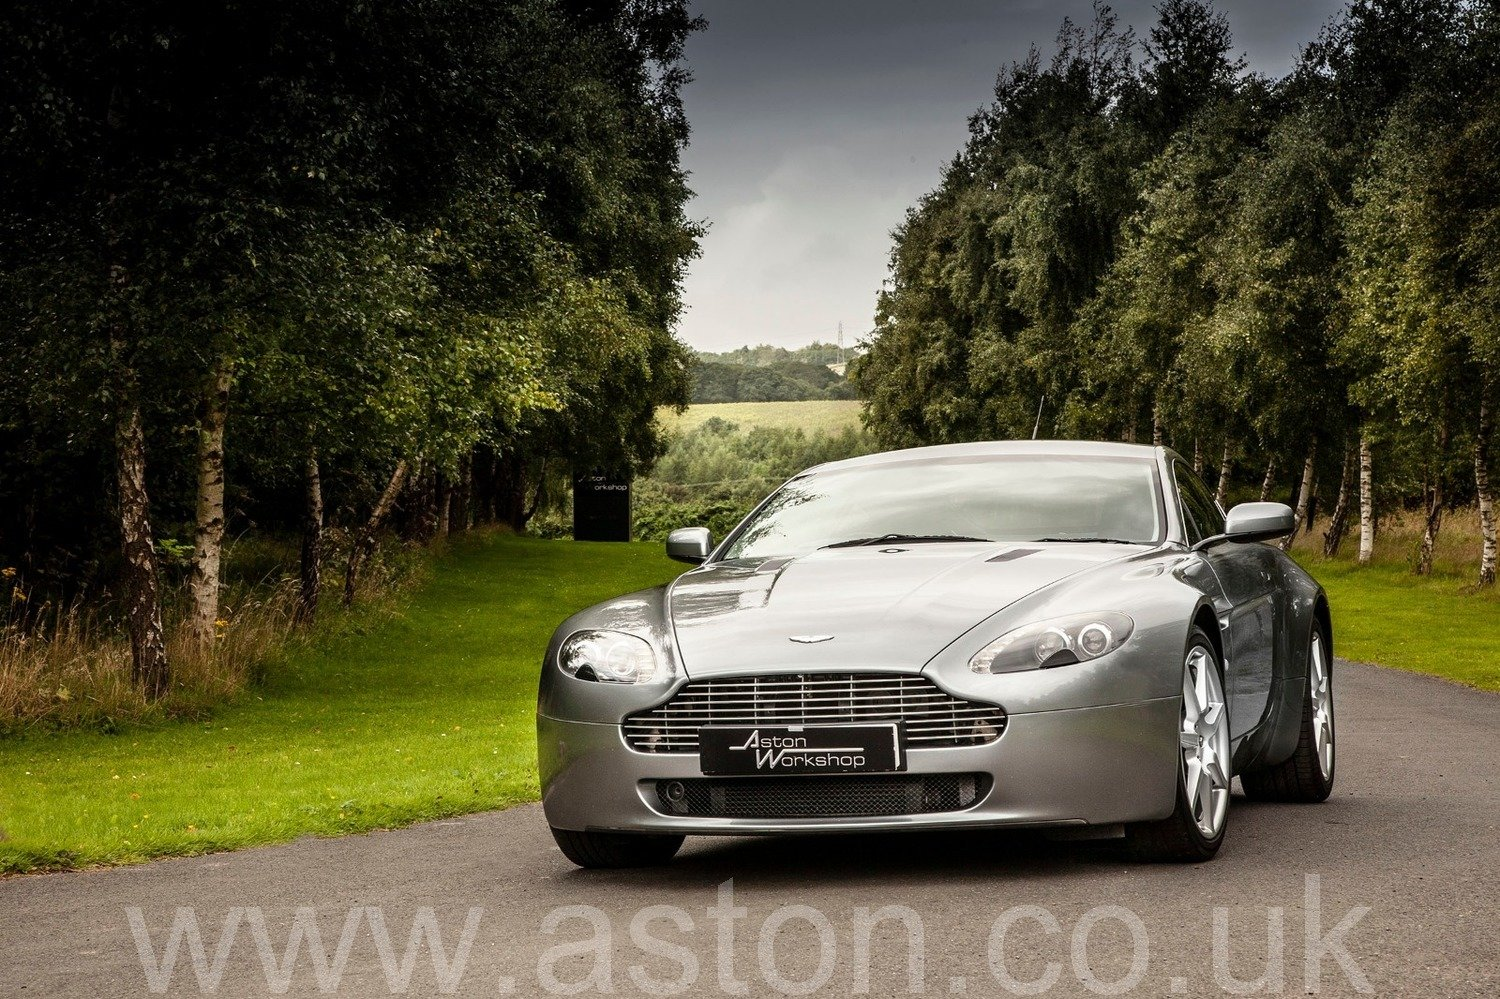 2007 Aston Martin V8 Vantage Coupe Manual  SOLD (picture 1 of 6)